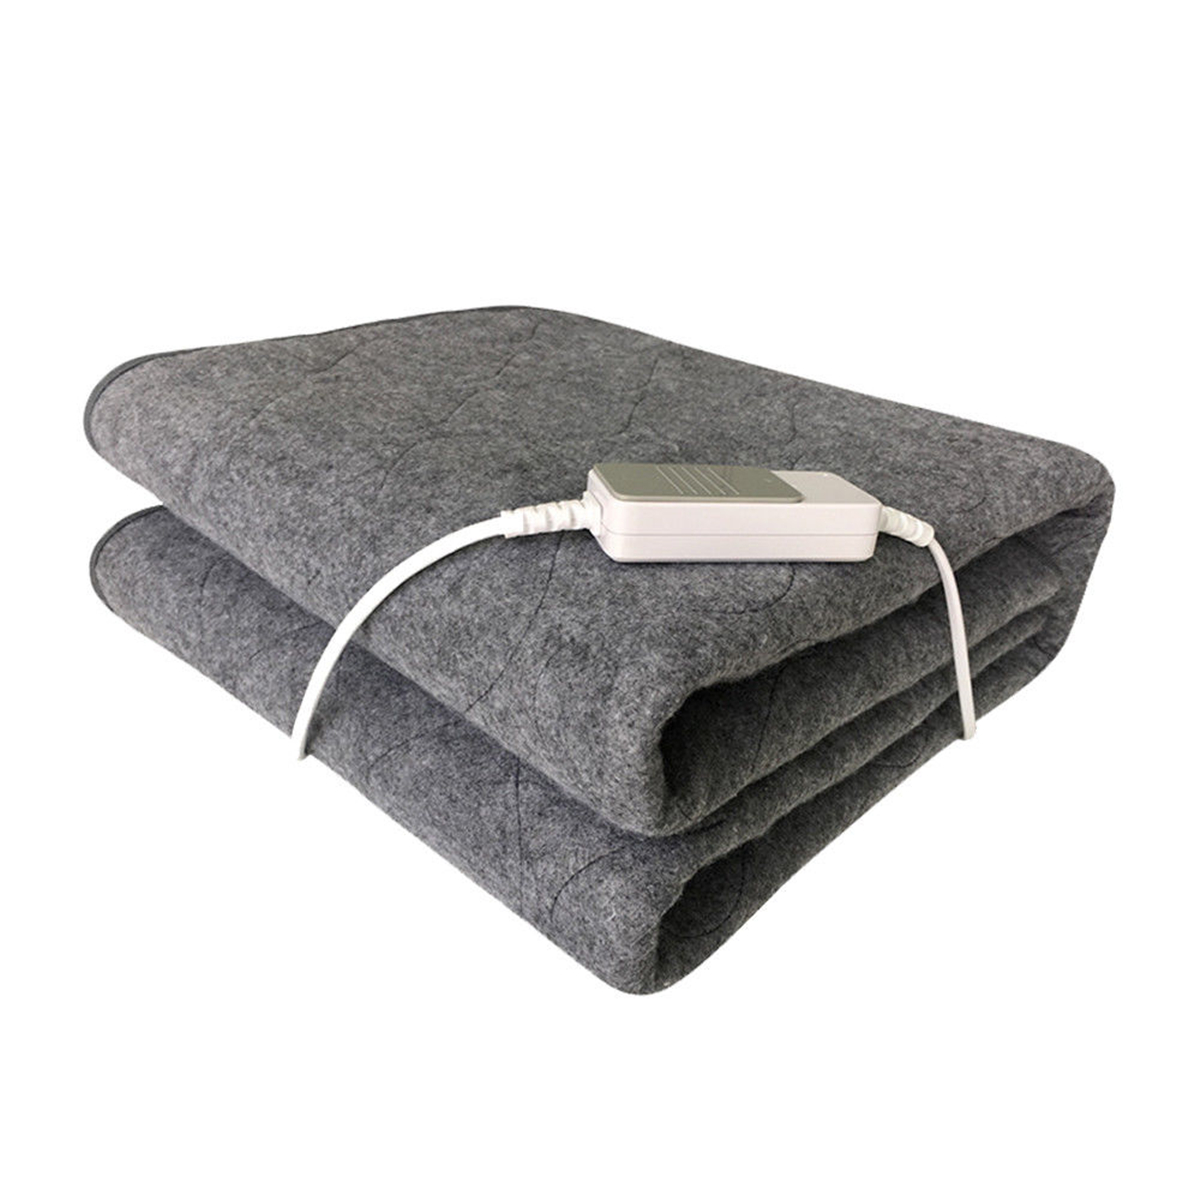 Winter Electric Blanket Warm Heating Mat Pad Throw Over Under Bed Mattress Non-Woven Fabric Blanket Adjustable 3 Colors 150*75cm